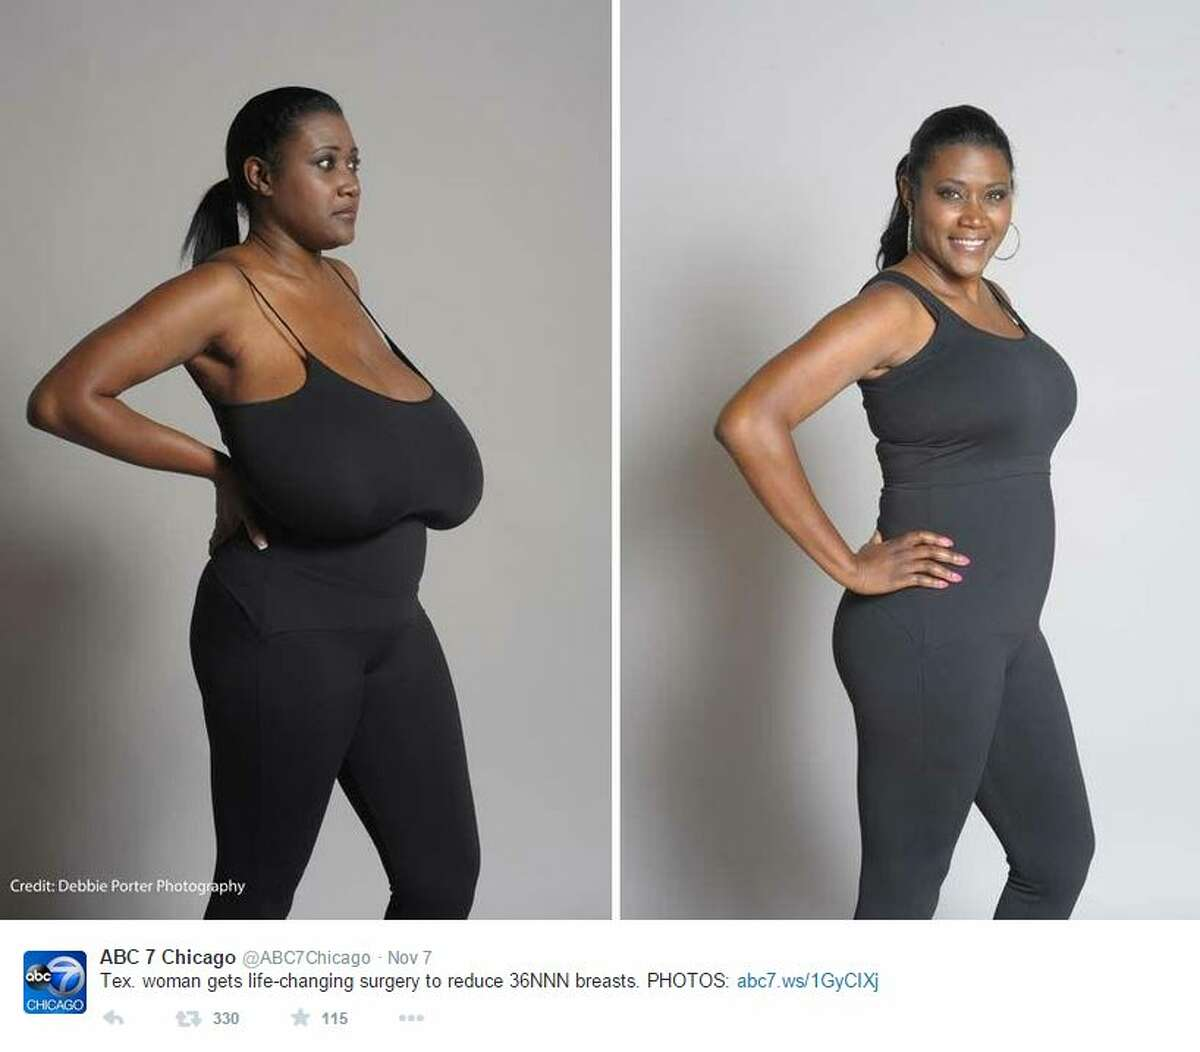 A Beaumont woman has undergone breast reduction surgery after a rare hormonal condition caused her breasts to swell - weighing roughly 15 pounds each. Kerisha Marks, 40, told The Washington Post she underwent the surgery after suffering from gigantomastia, a hormonal condition that causes breasts to grow up to 3 percent of a person's body weight.